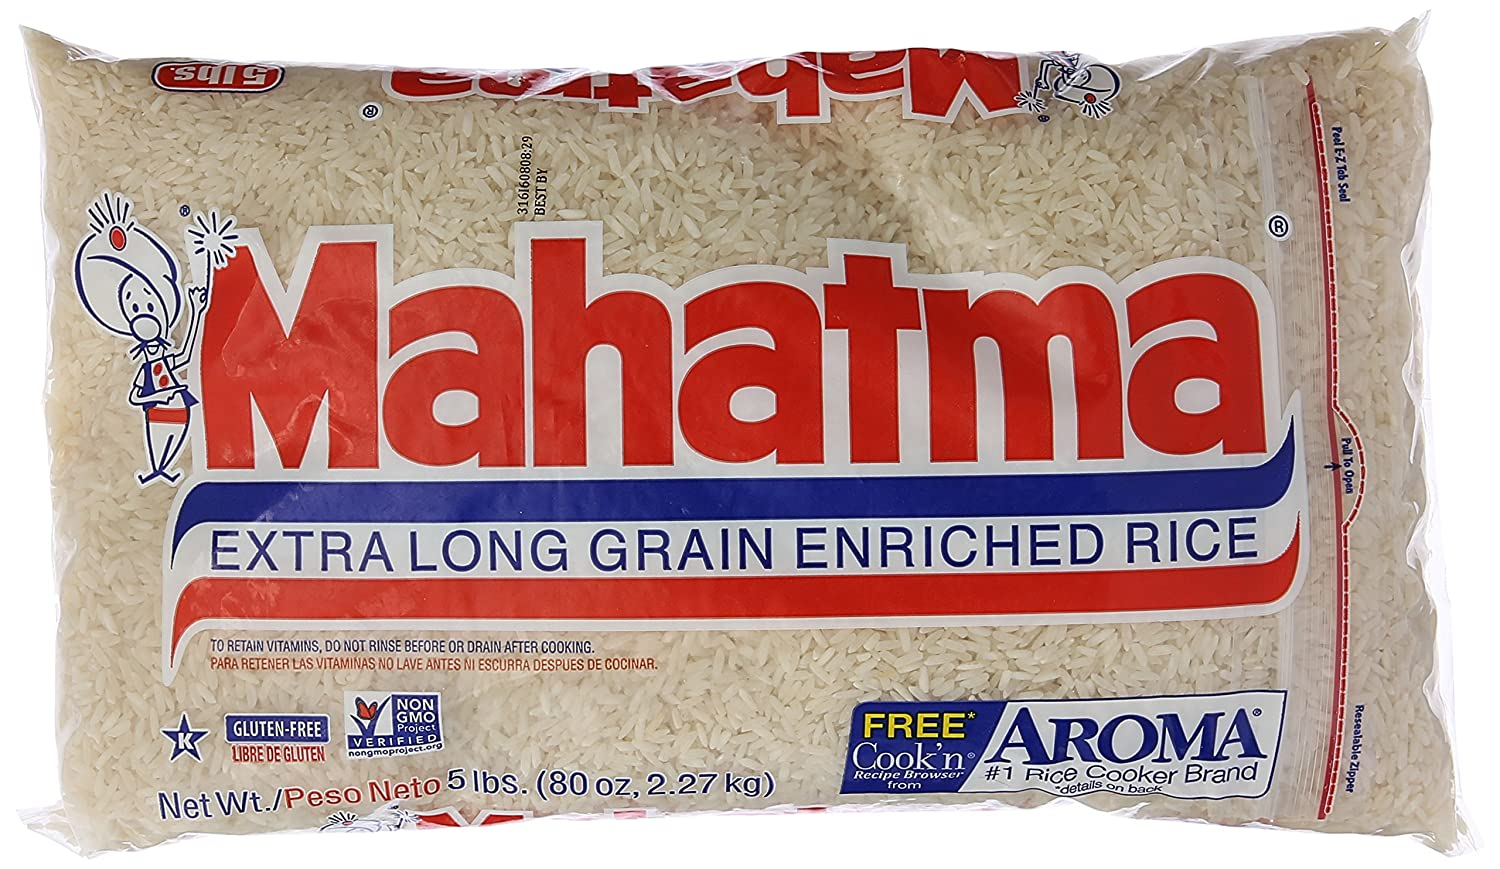 Rivianna Foods Mahatma Long Grain Rice, 5 lb